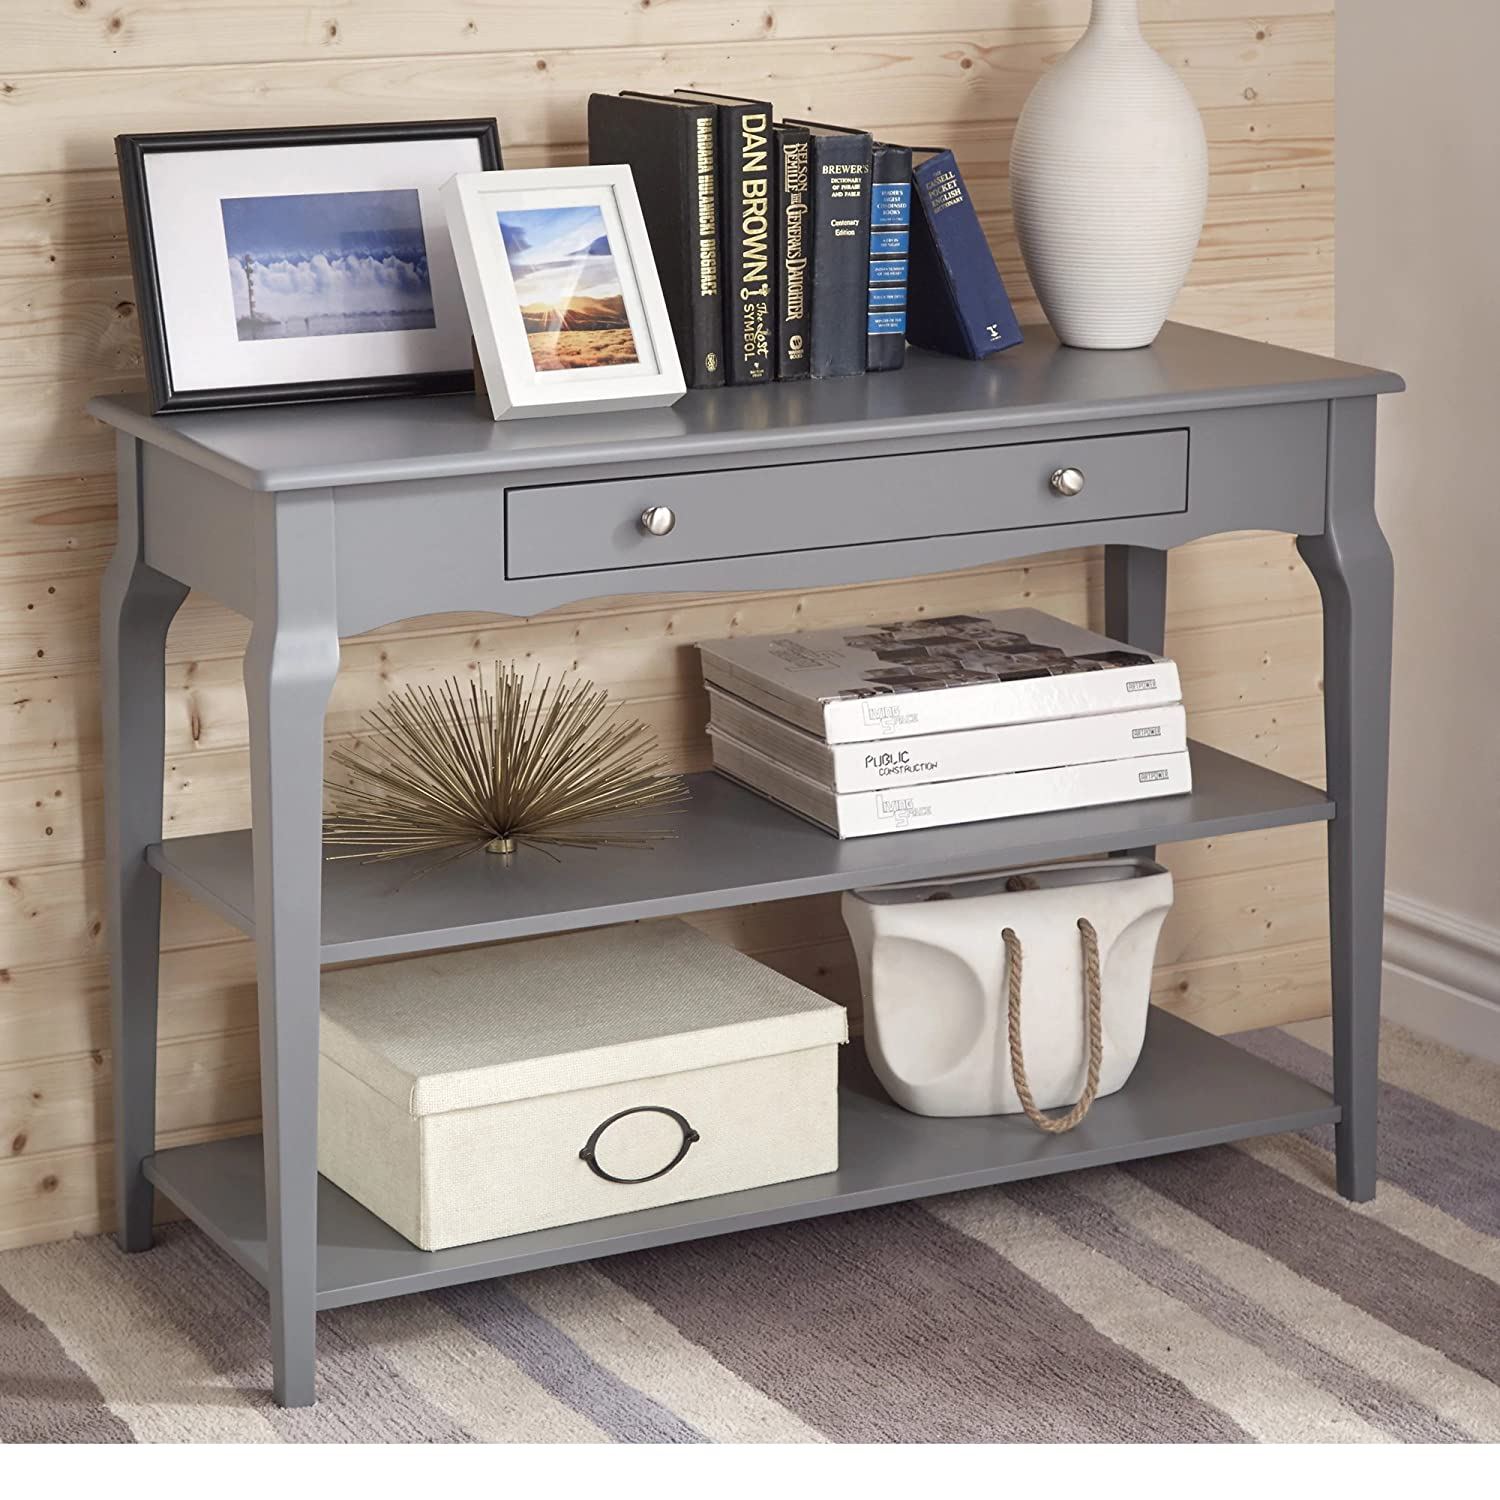 Amazon.com: ModHaus Living Modern Wood TV Stand Accent Console Sofa Table  With 1 Drawer And 2 Open Shelves   Includes Pen (Gray): Kitchen U0026 Dining